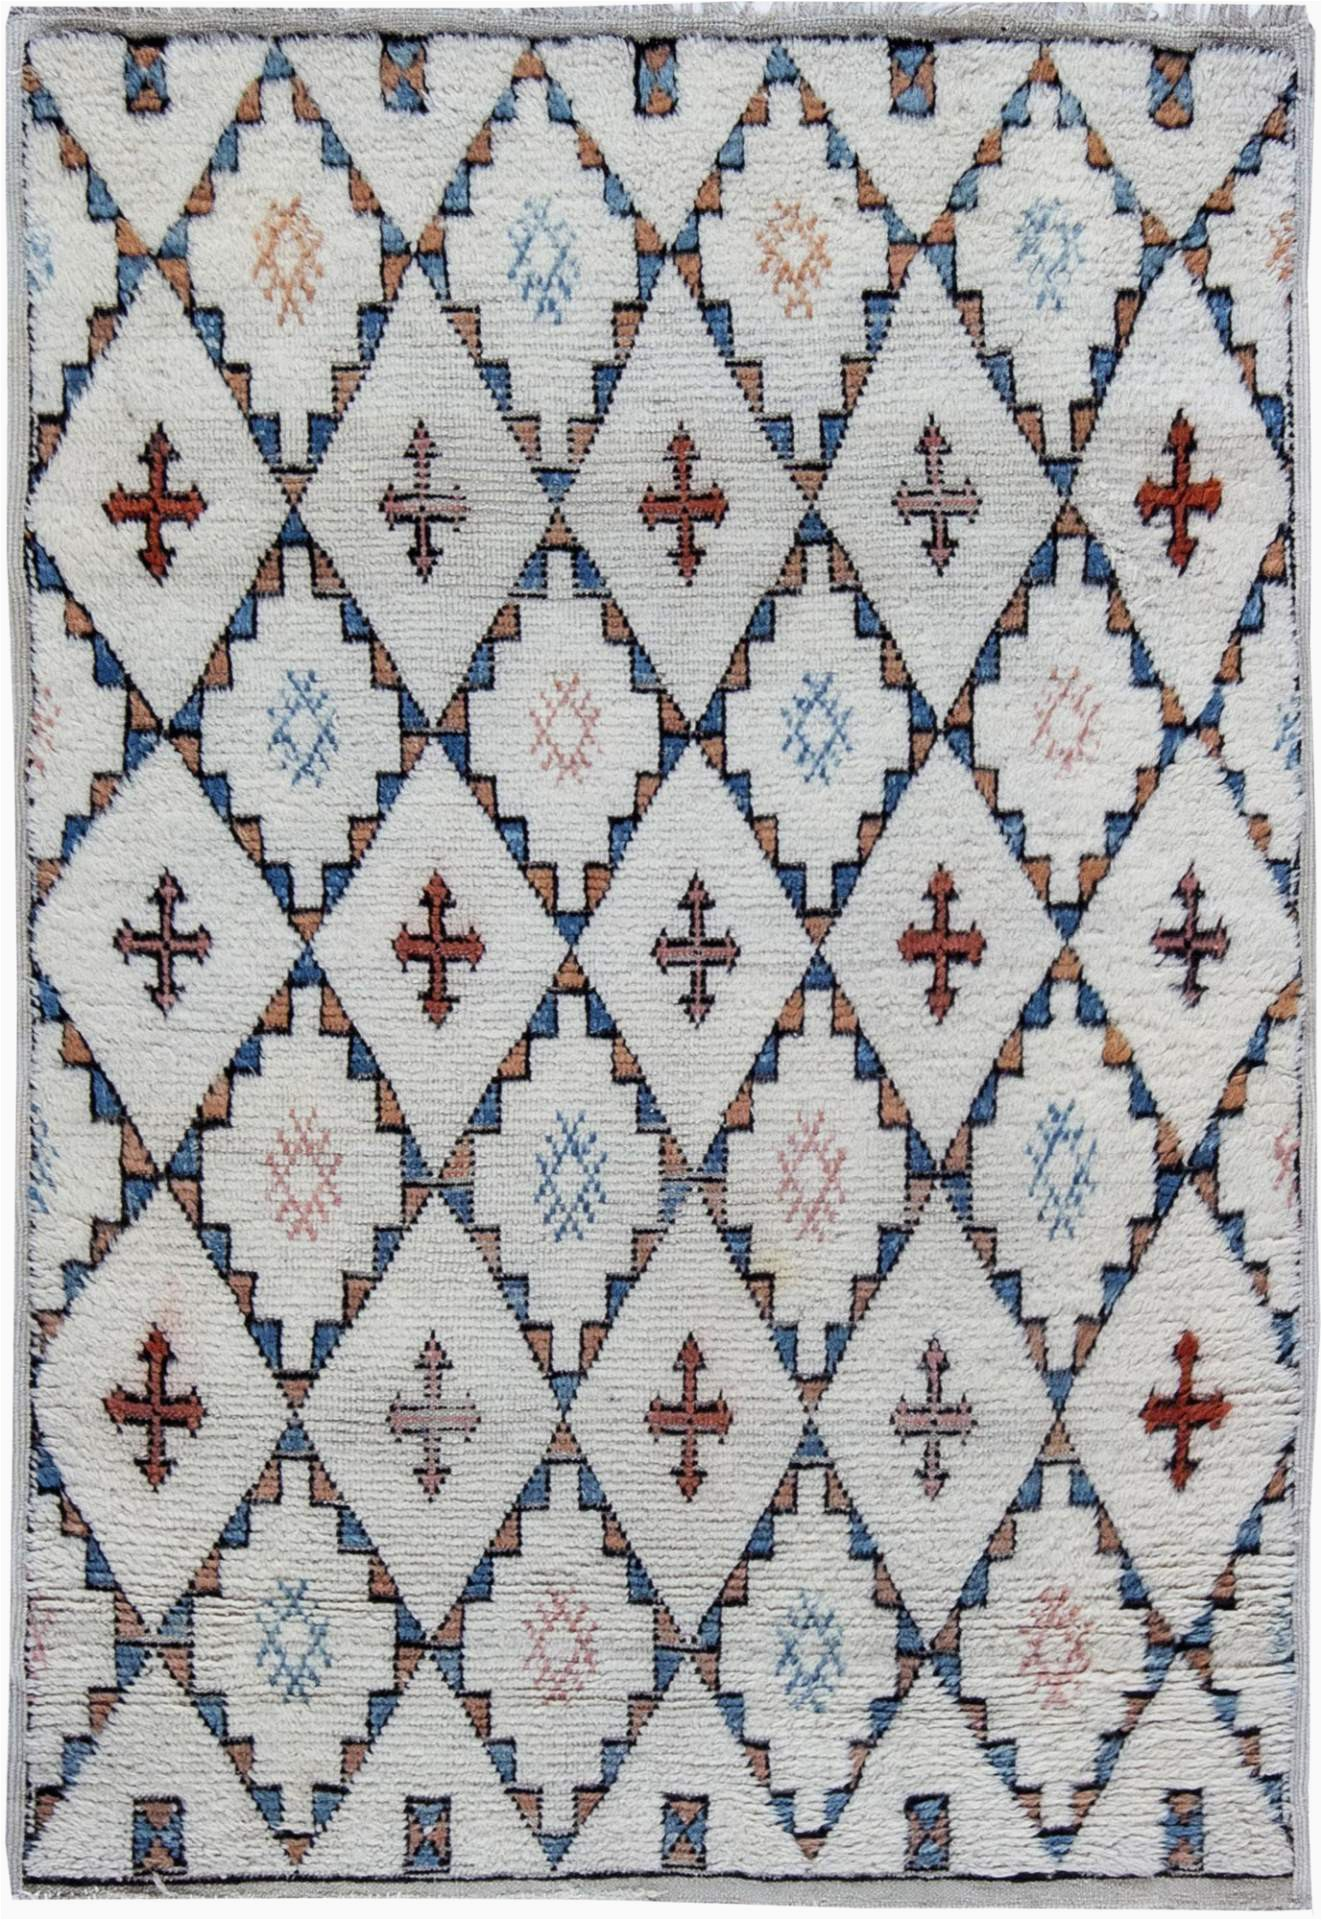 Blue and White Moroccan Rug Vintage Moroccan Rug Diamond Hac Pitrak Pattern White 4 —5 8